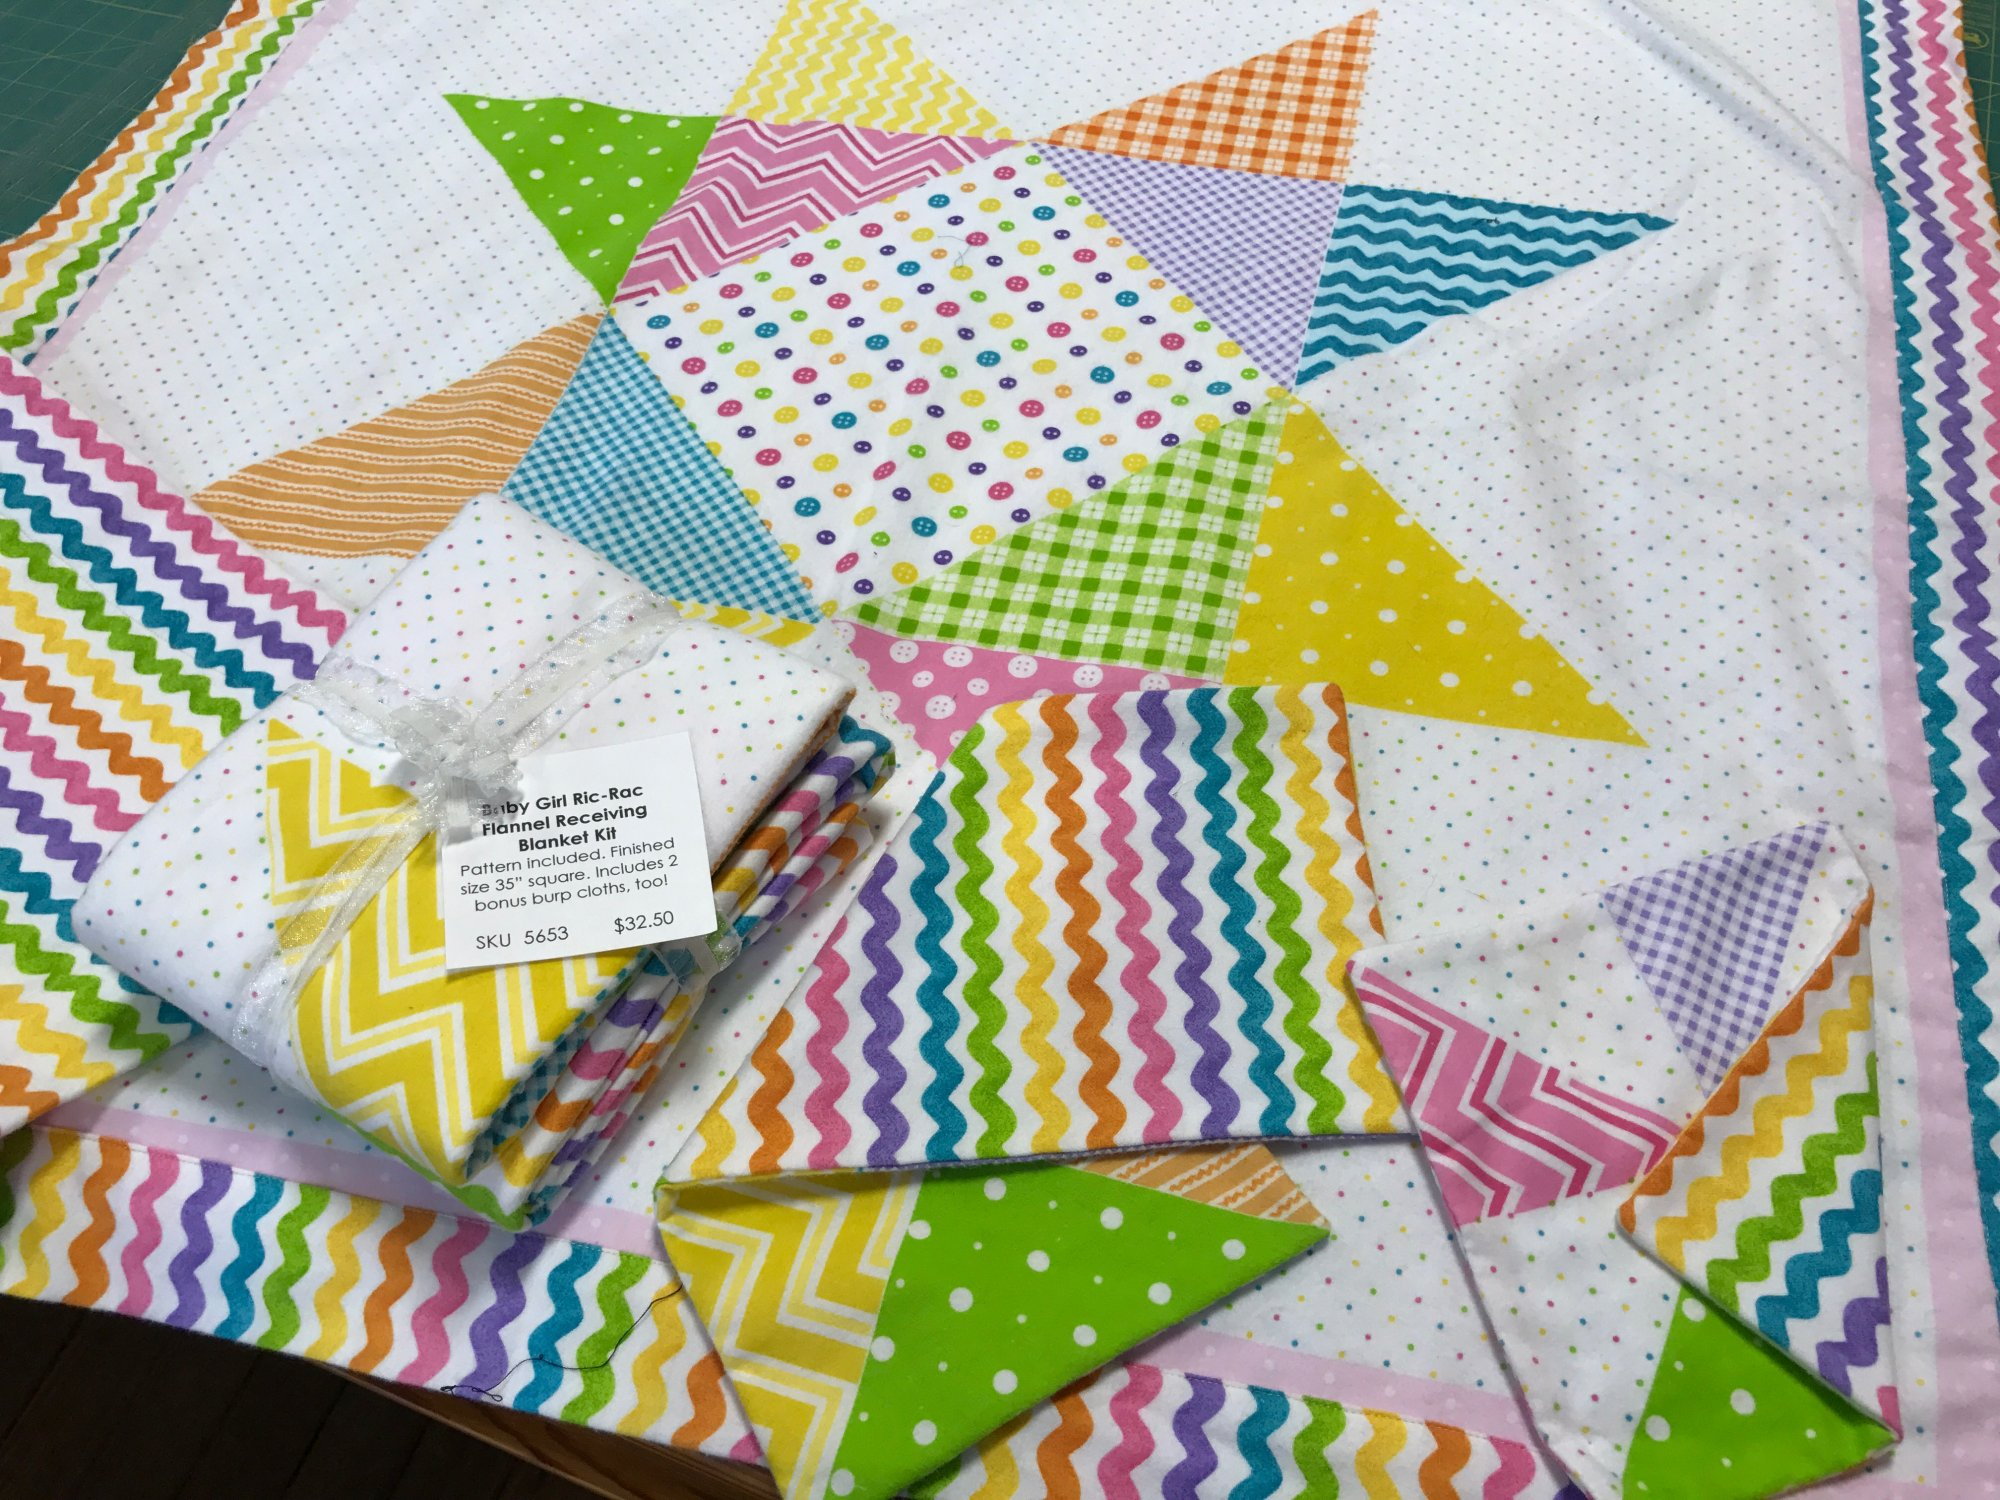 Baby Girl RicRac Flannel Receiving Blanket Kit